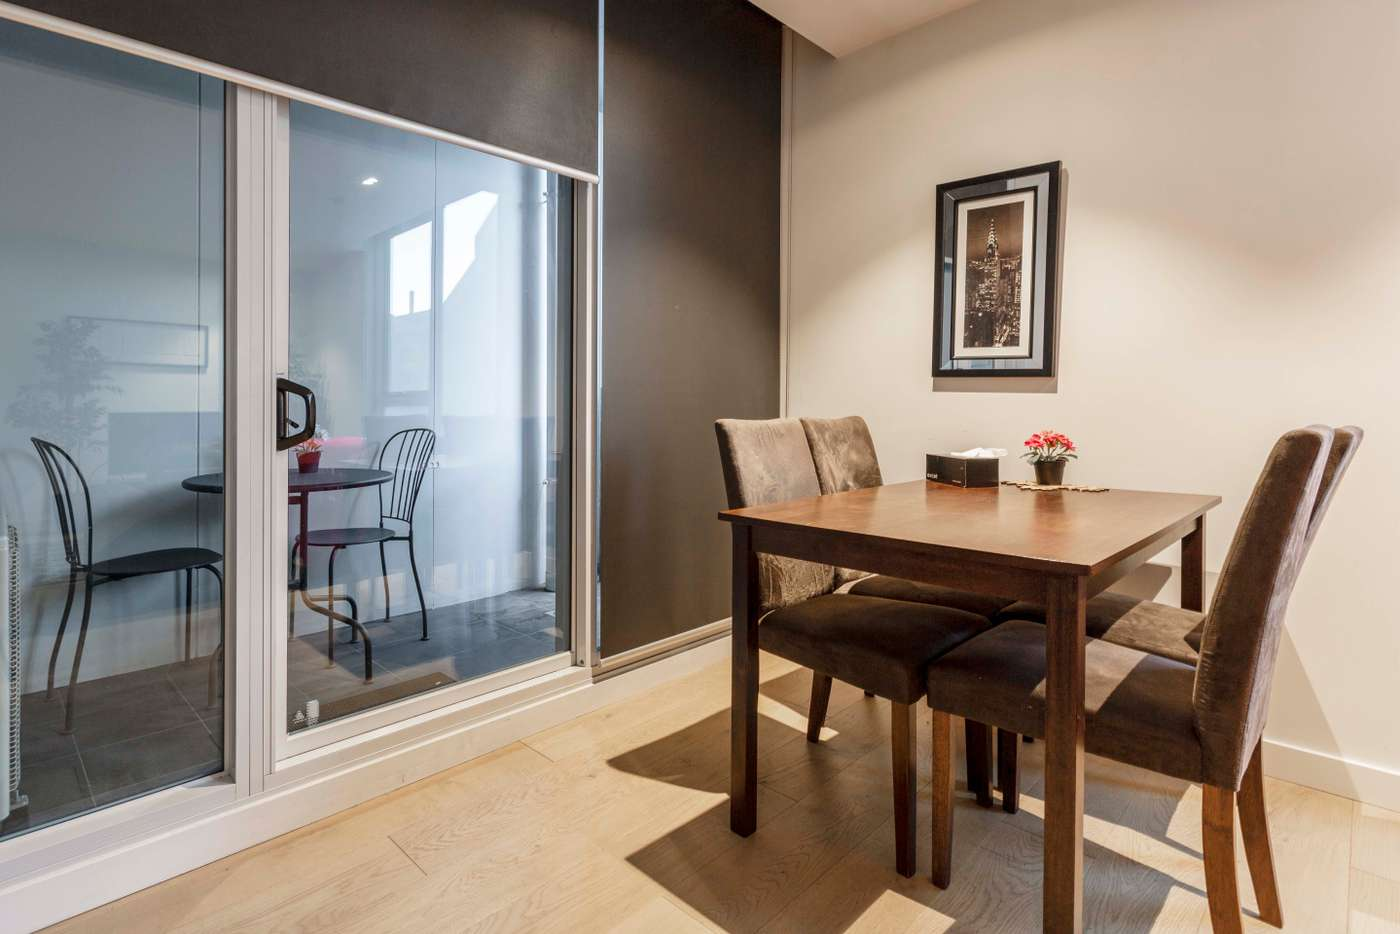 Sixth view of Homely apartment listing, 3 Brewery Lane, Collingwood VIC 3066